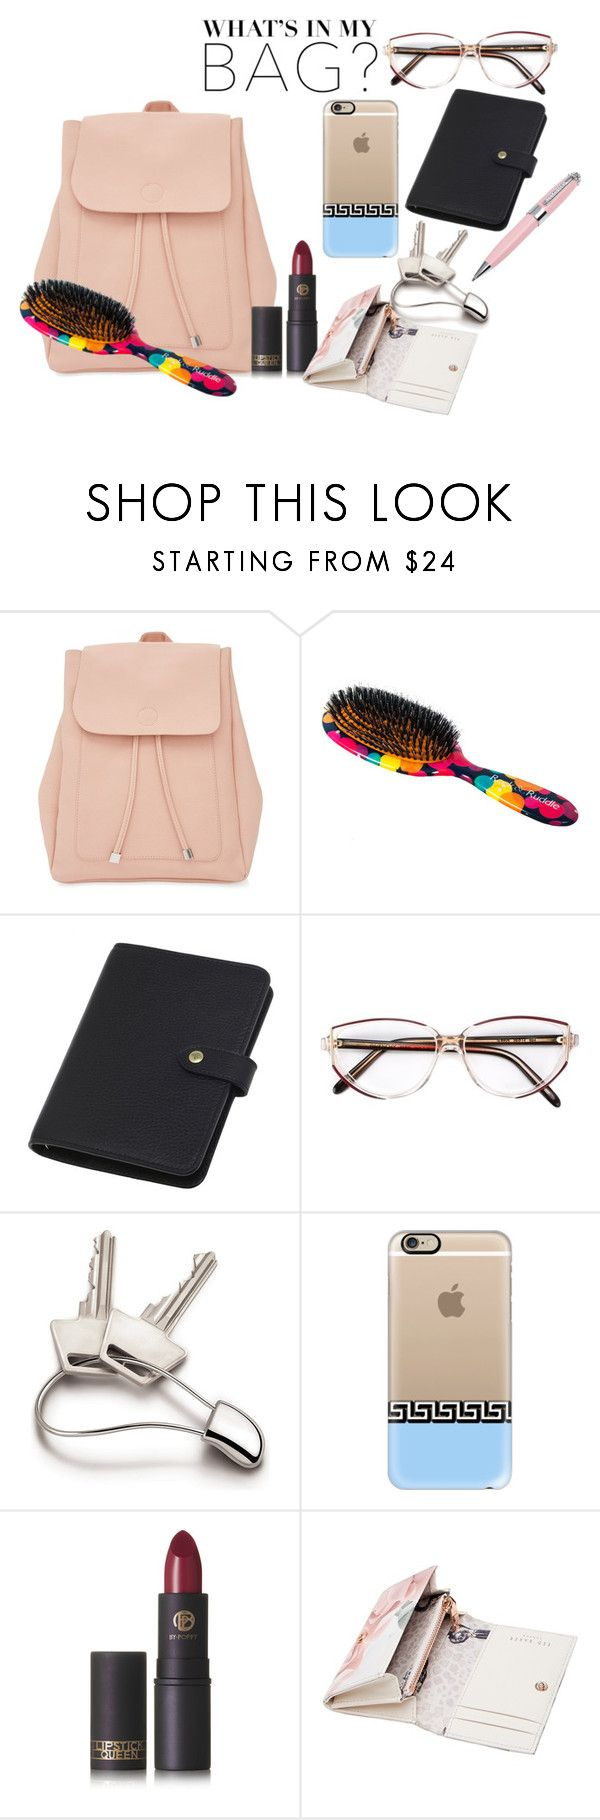 """""""In My Backpack"""" by victoria-ronson ❤ liked on Polyvore featuring New Look, Rock & Ruddle, Mulberry, Givenchy, Georg Jensen, Casetify, Lipstick Queen, Ted Baker, ICE London and backpack"""